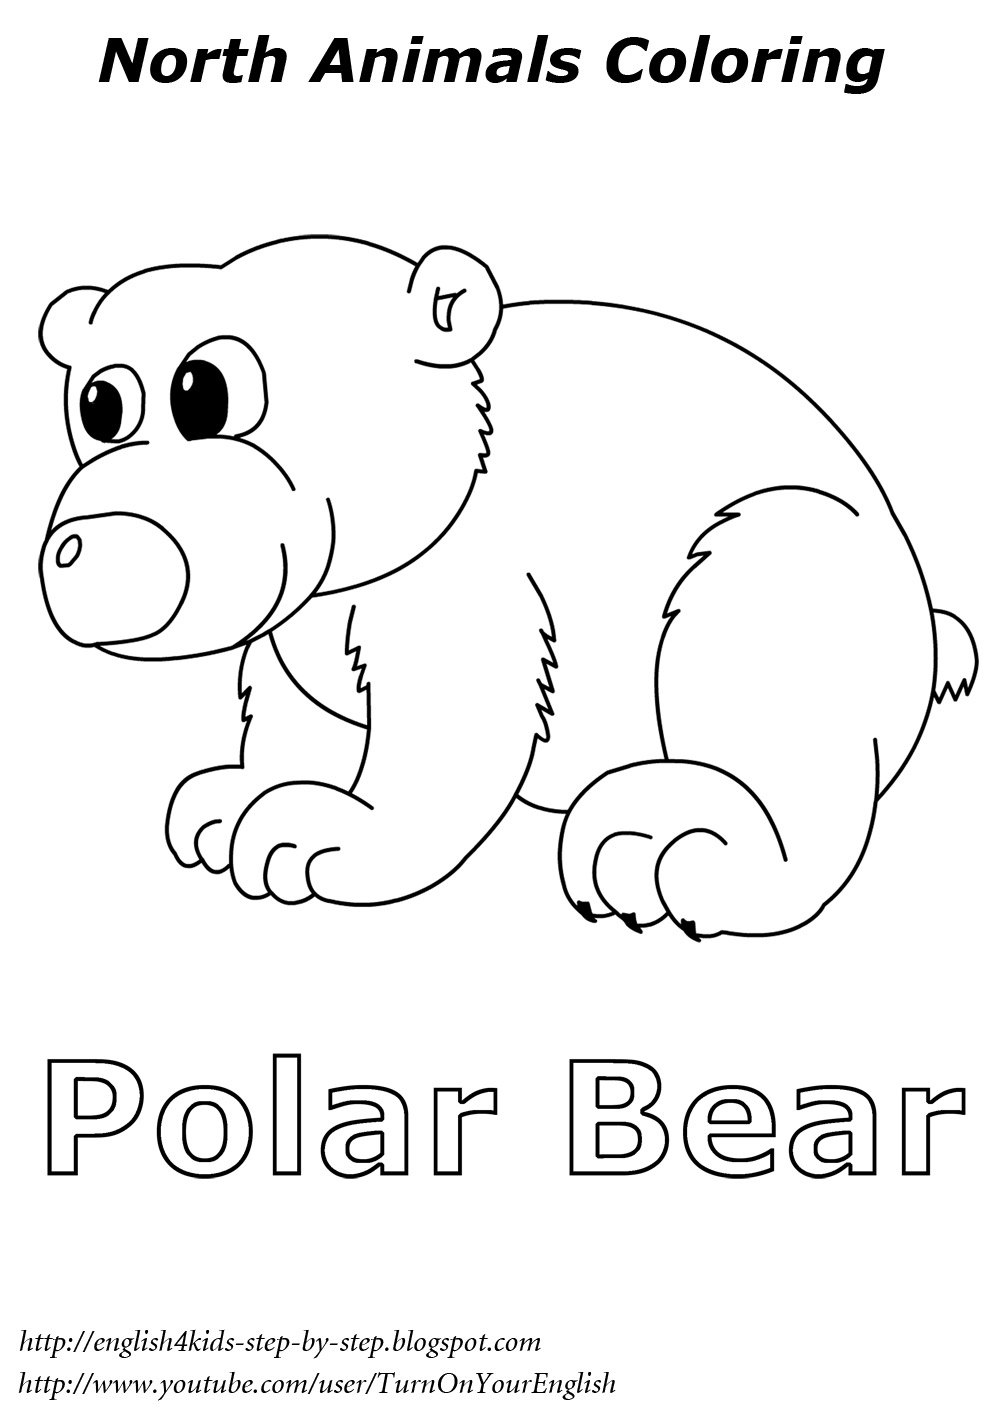 coloring pages of arctic animals - photo#6